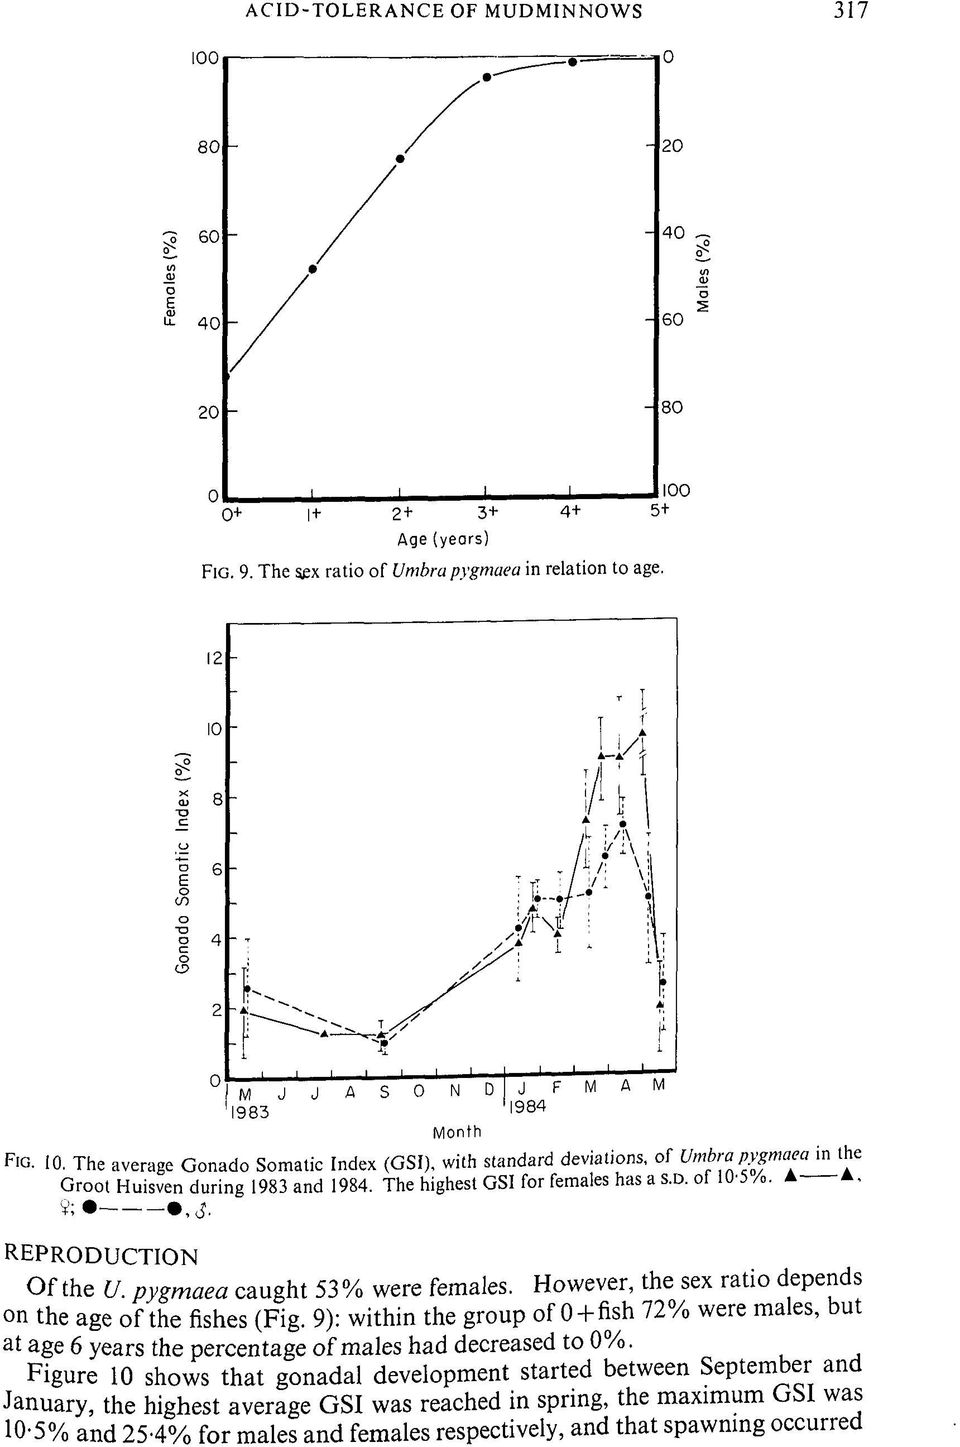 pygm aea cau g h t 53% were females. H w e «r. * e sex r P on the age o f the fishes (Fig. 9): w ithin the group of 0 + fish 7 2 /.